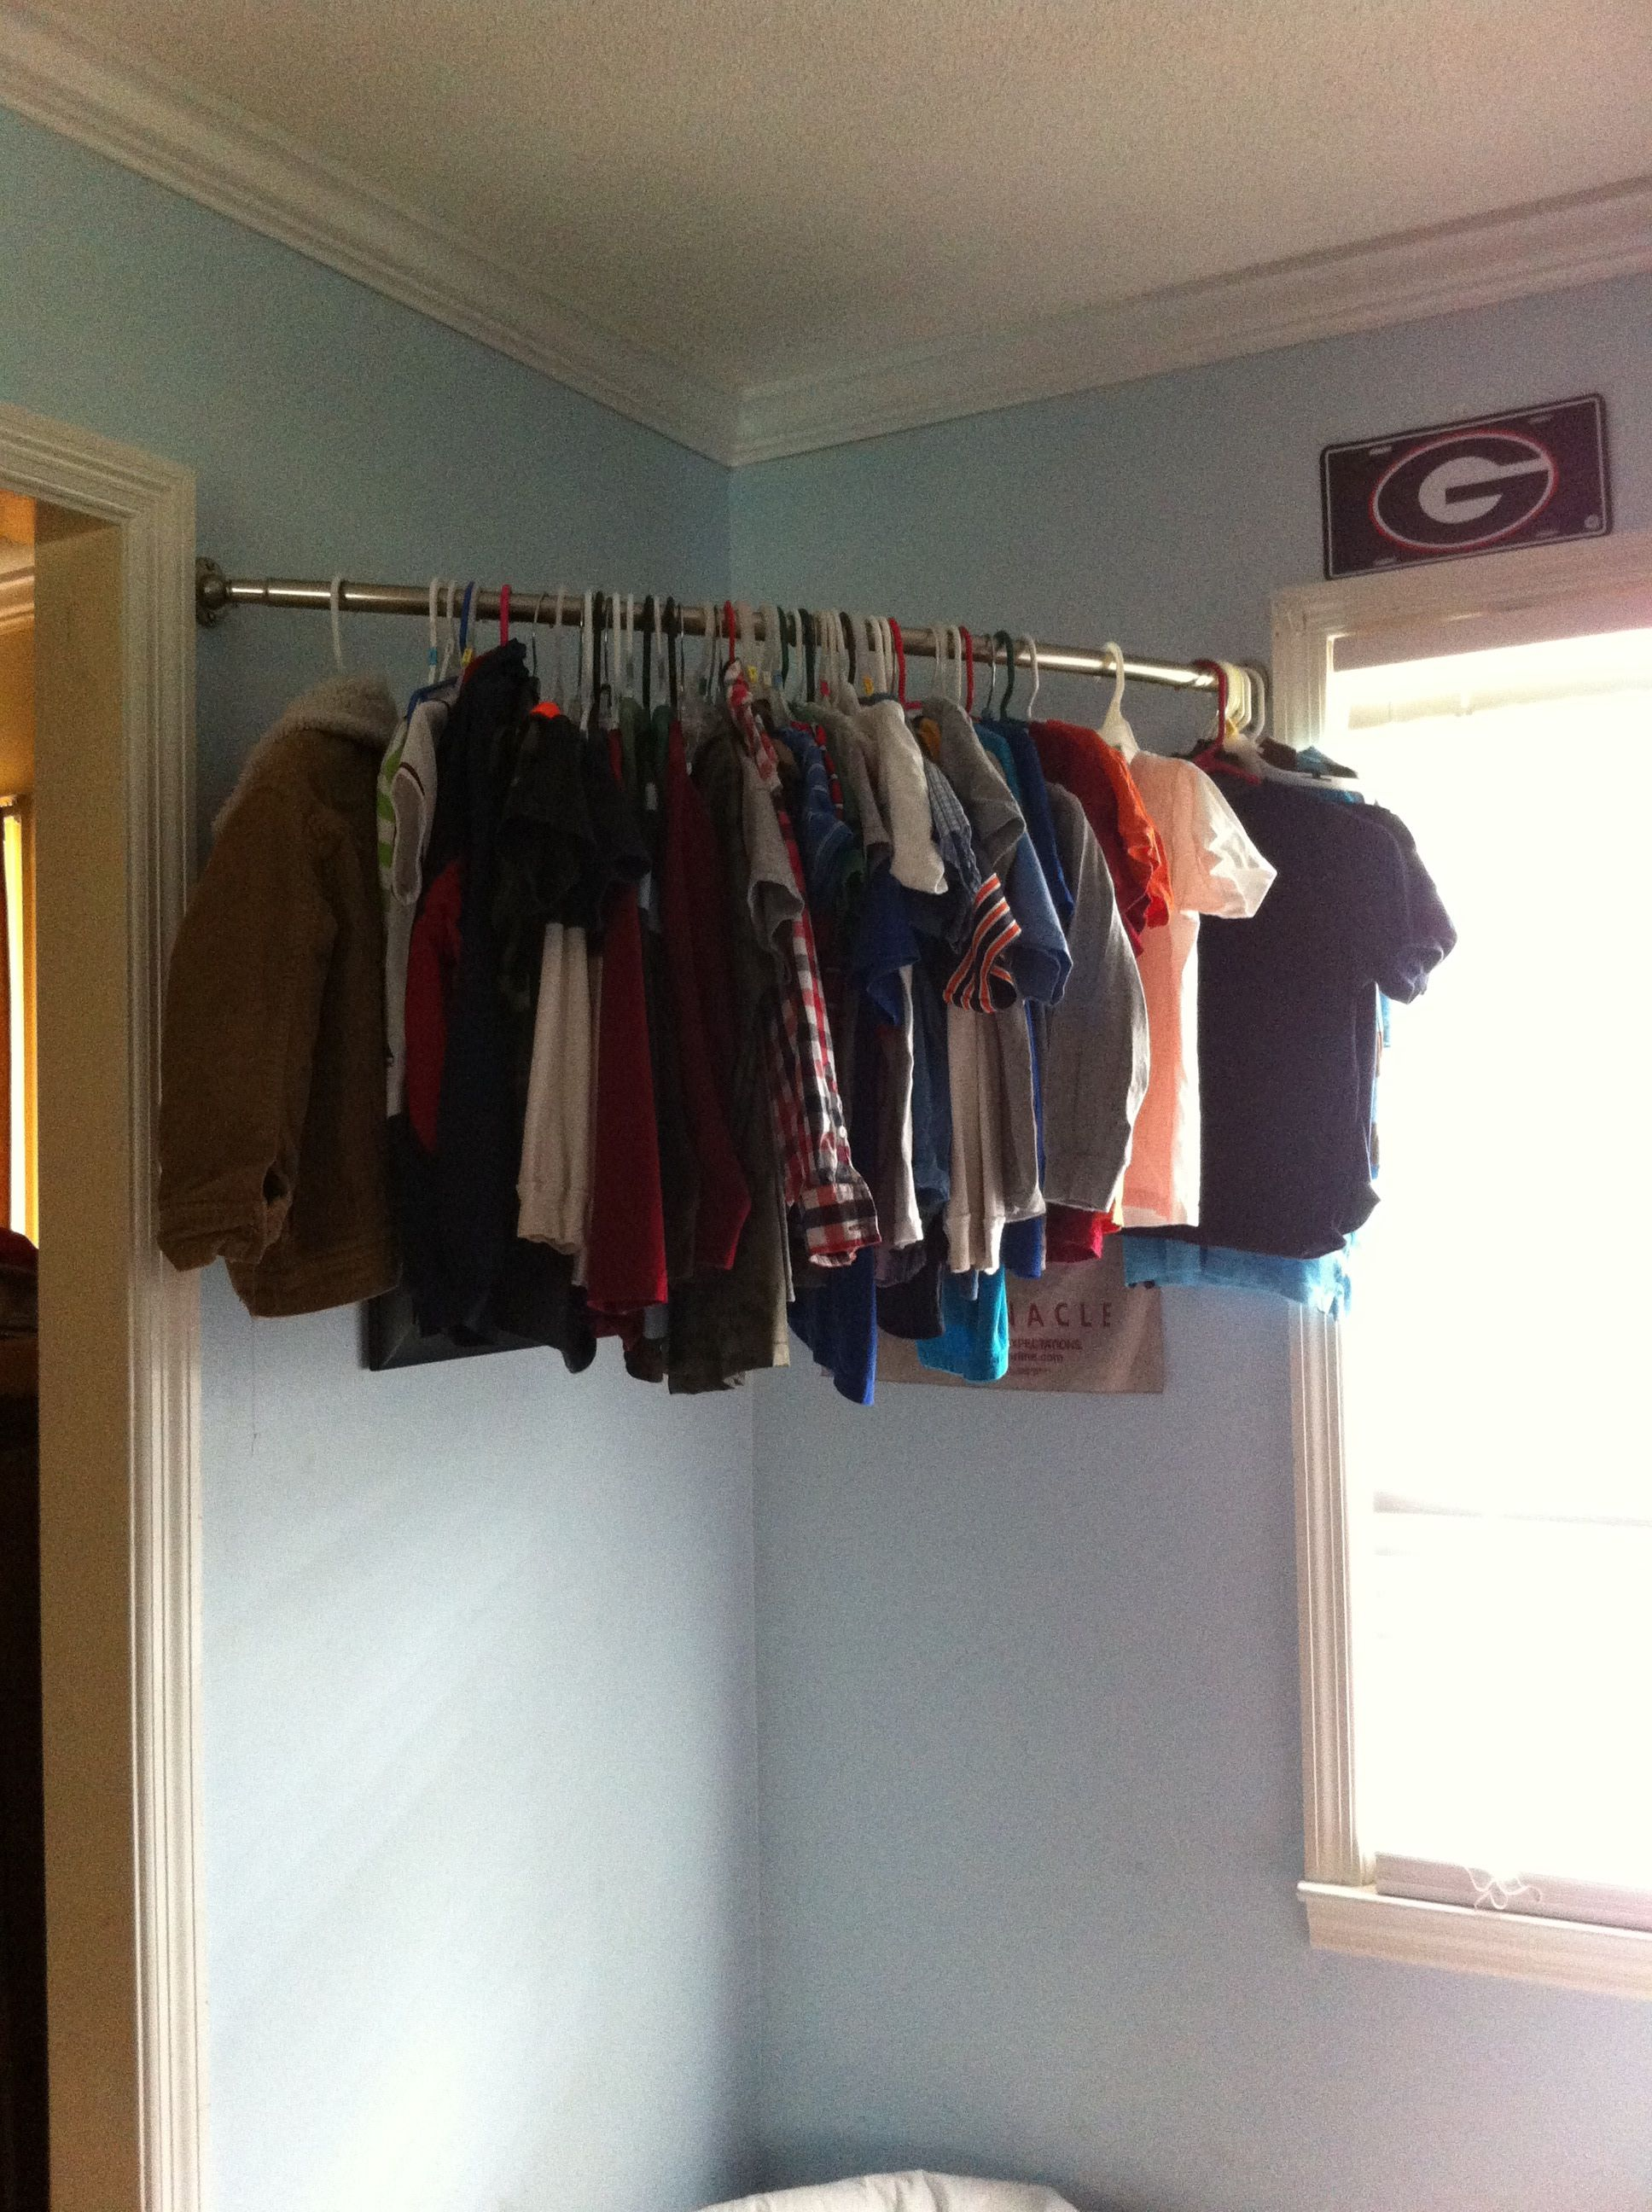 No closet i used a curved shower rod for my son 39 s clothes - Room with no closet ...